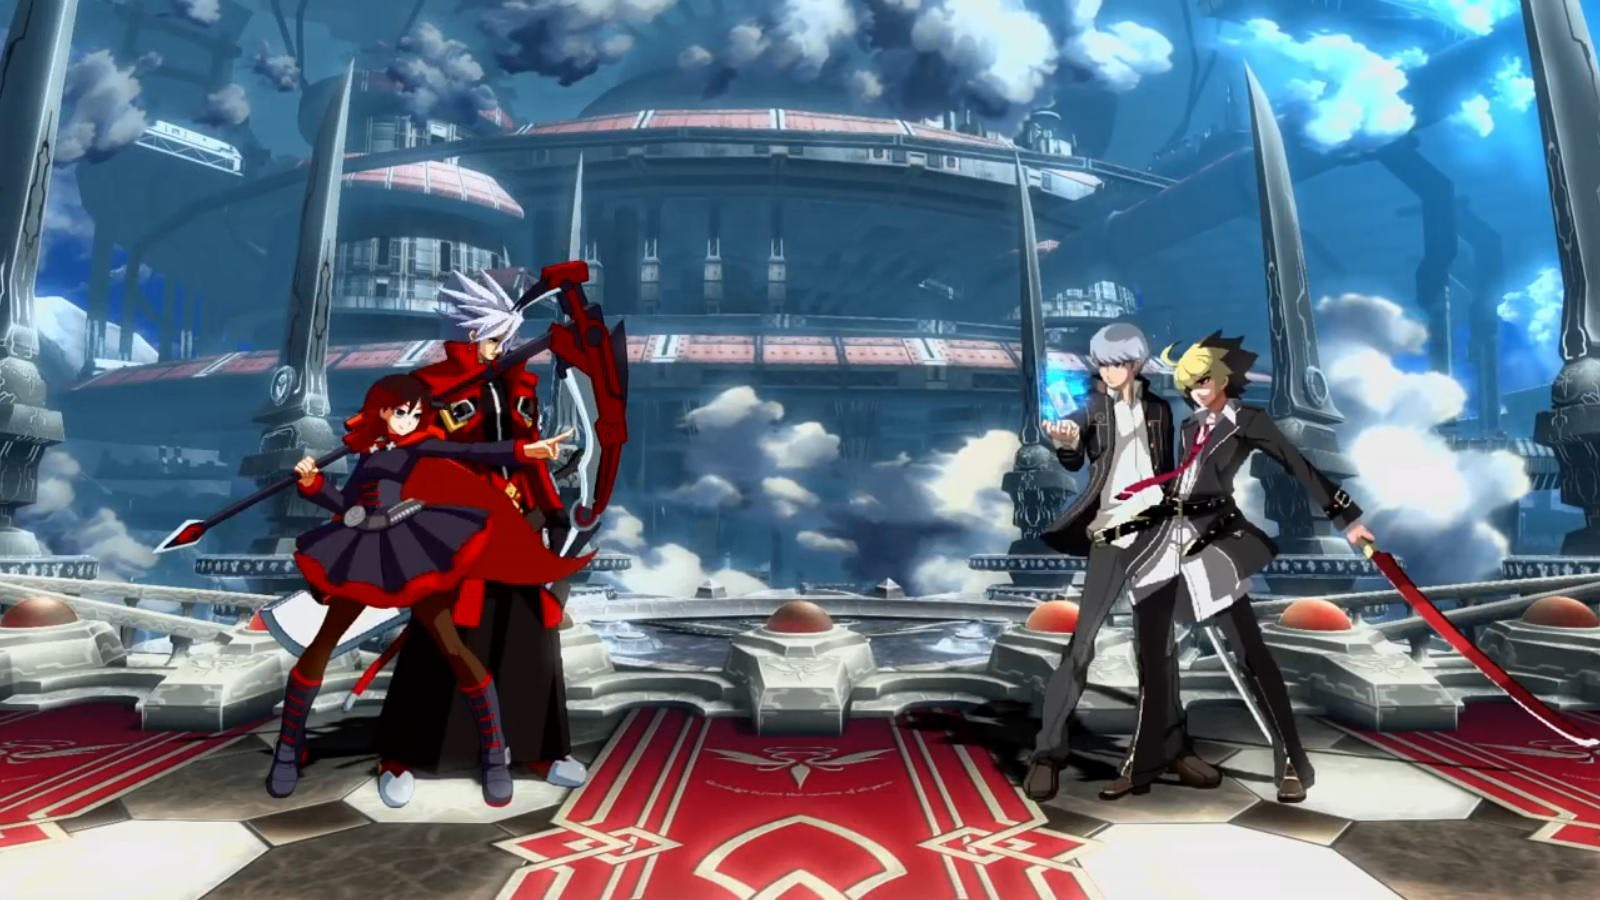 Estas son las novedades de la actualización 1.31 de BlazBlue: Cross Tag Battle